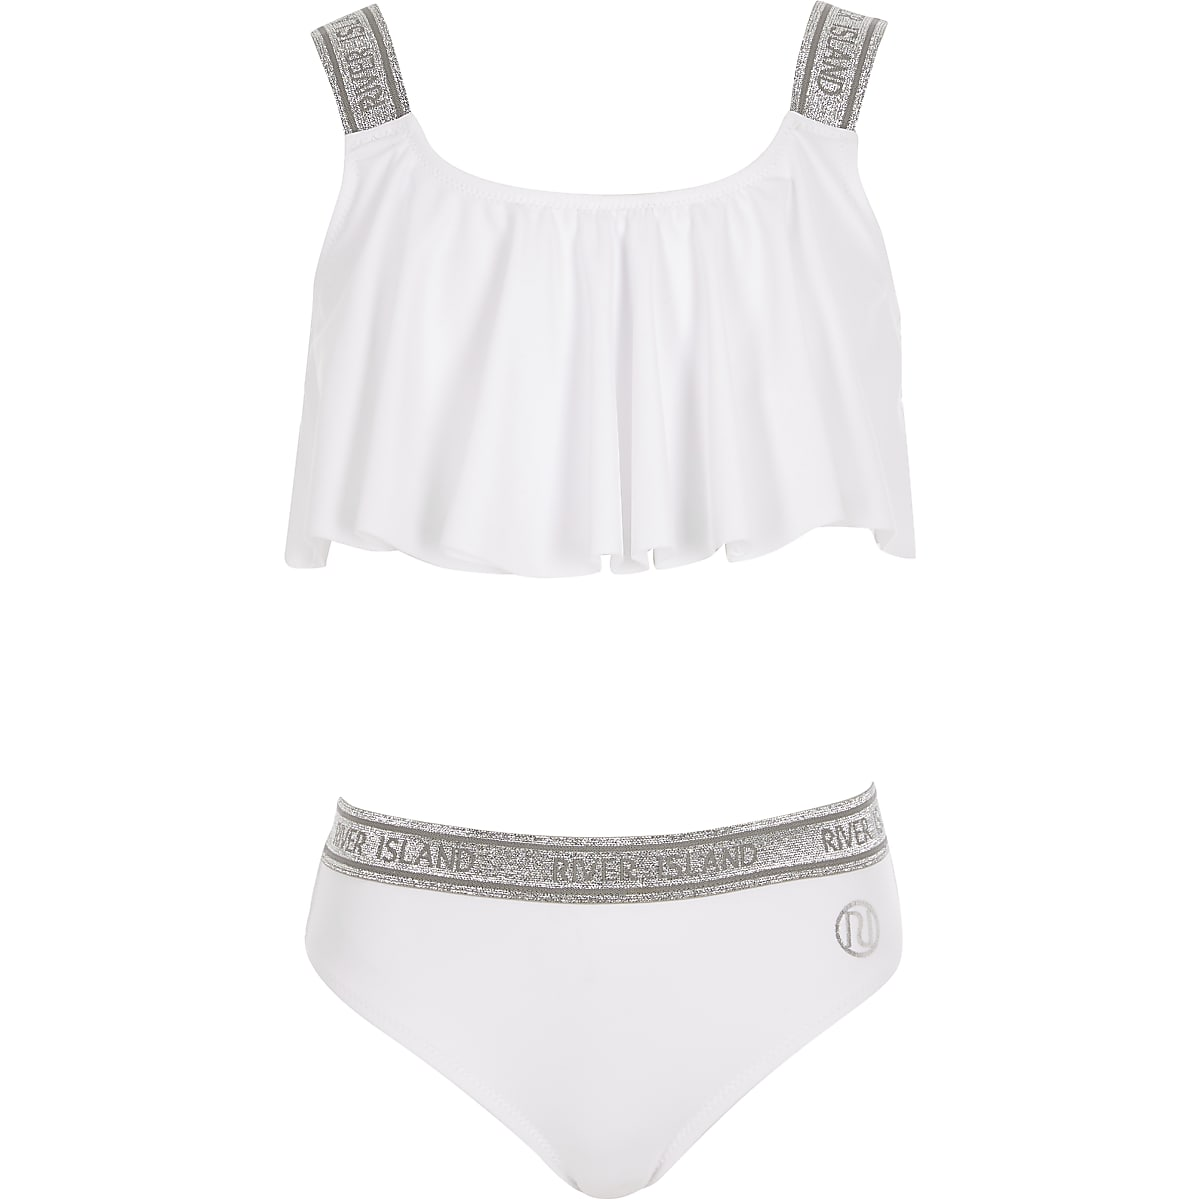 quality products authorized site buy real Girls white glitter RI bikini set